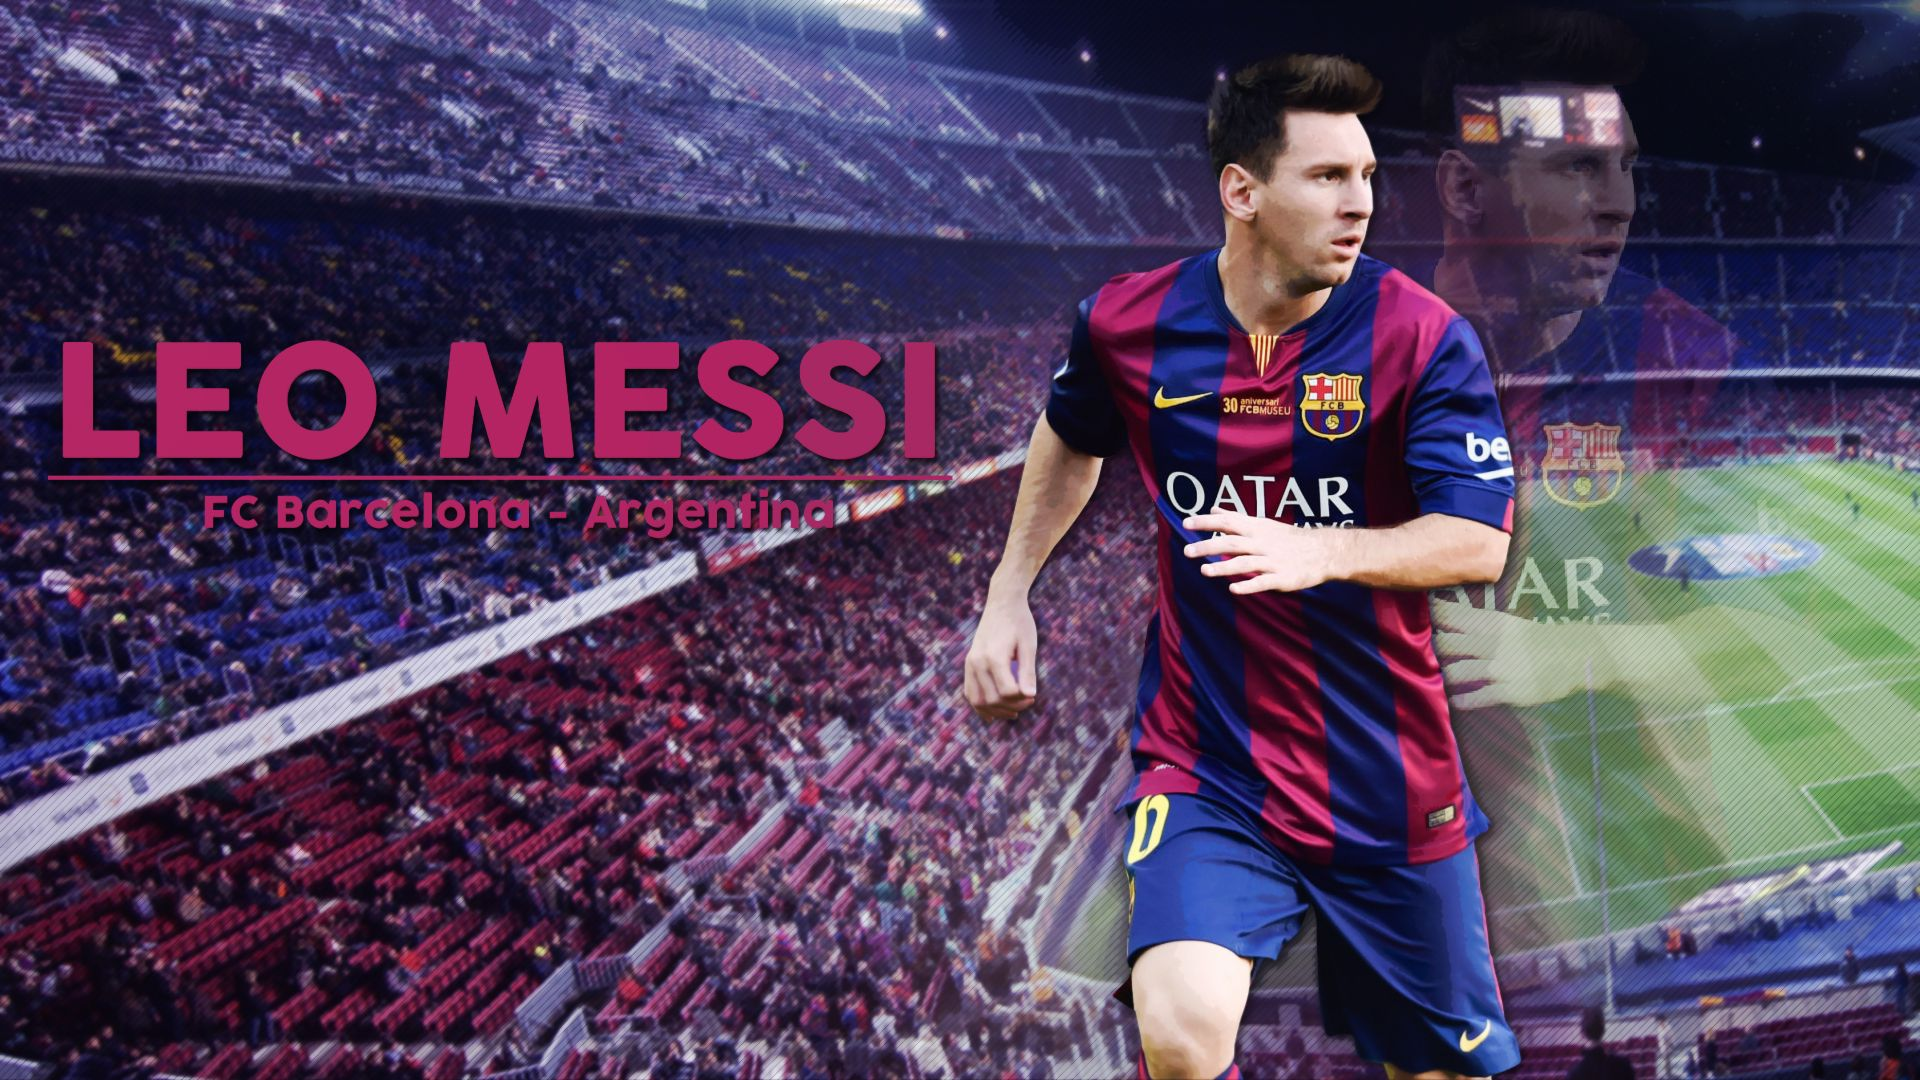 Barcelona Messi Wallpaper Full Hd - Epic Wallpaperz